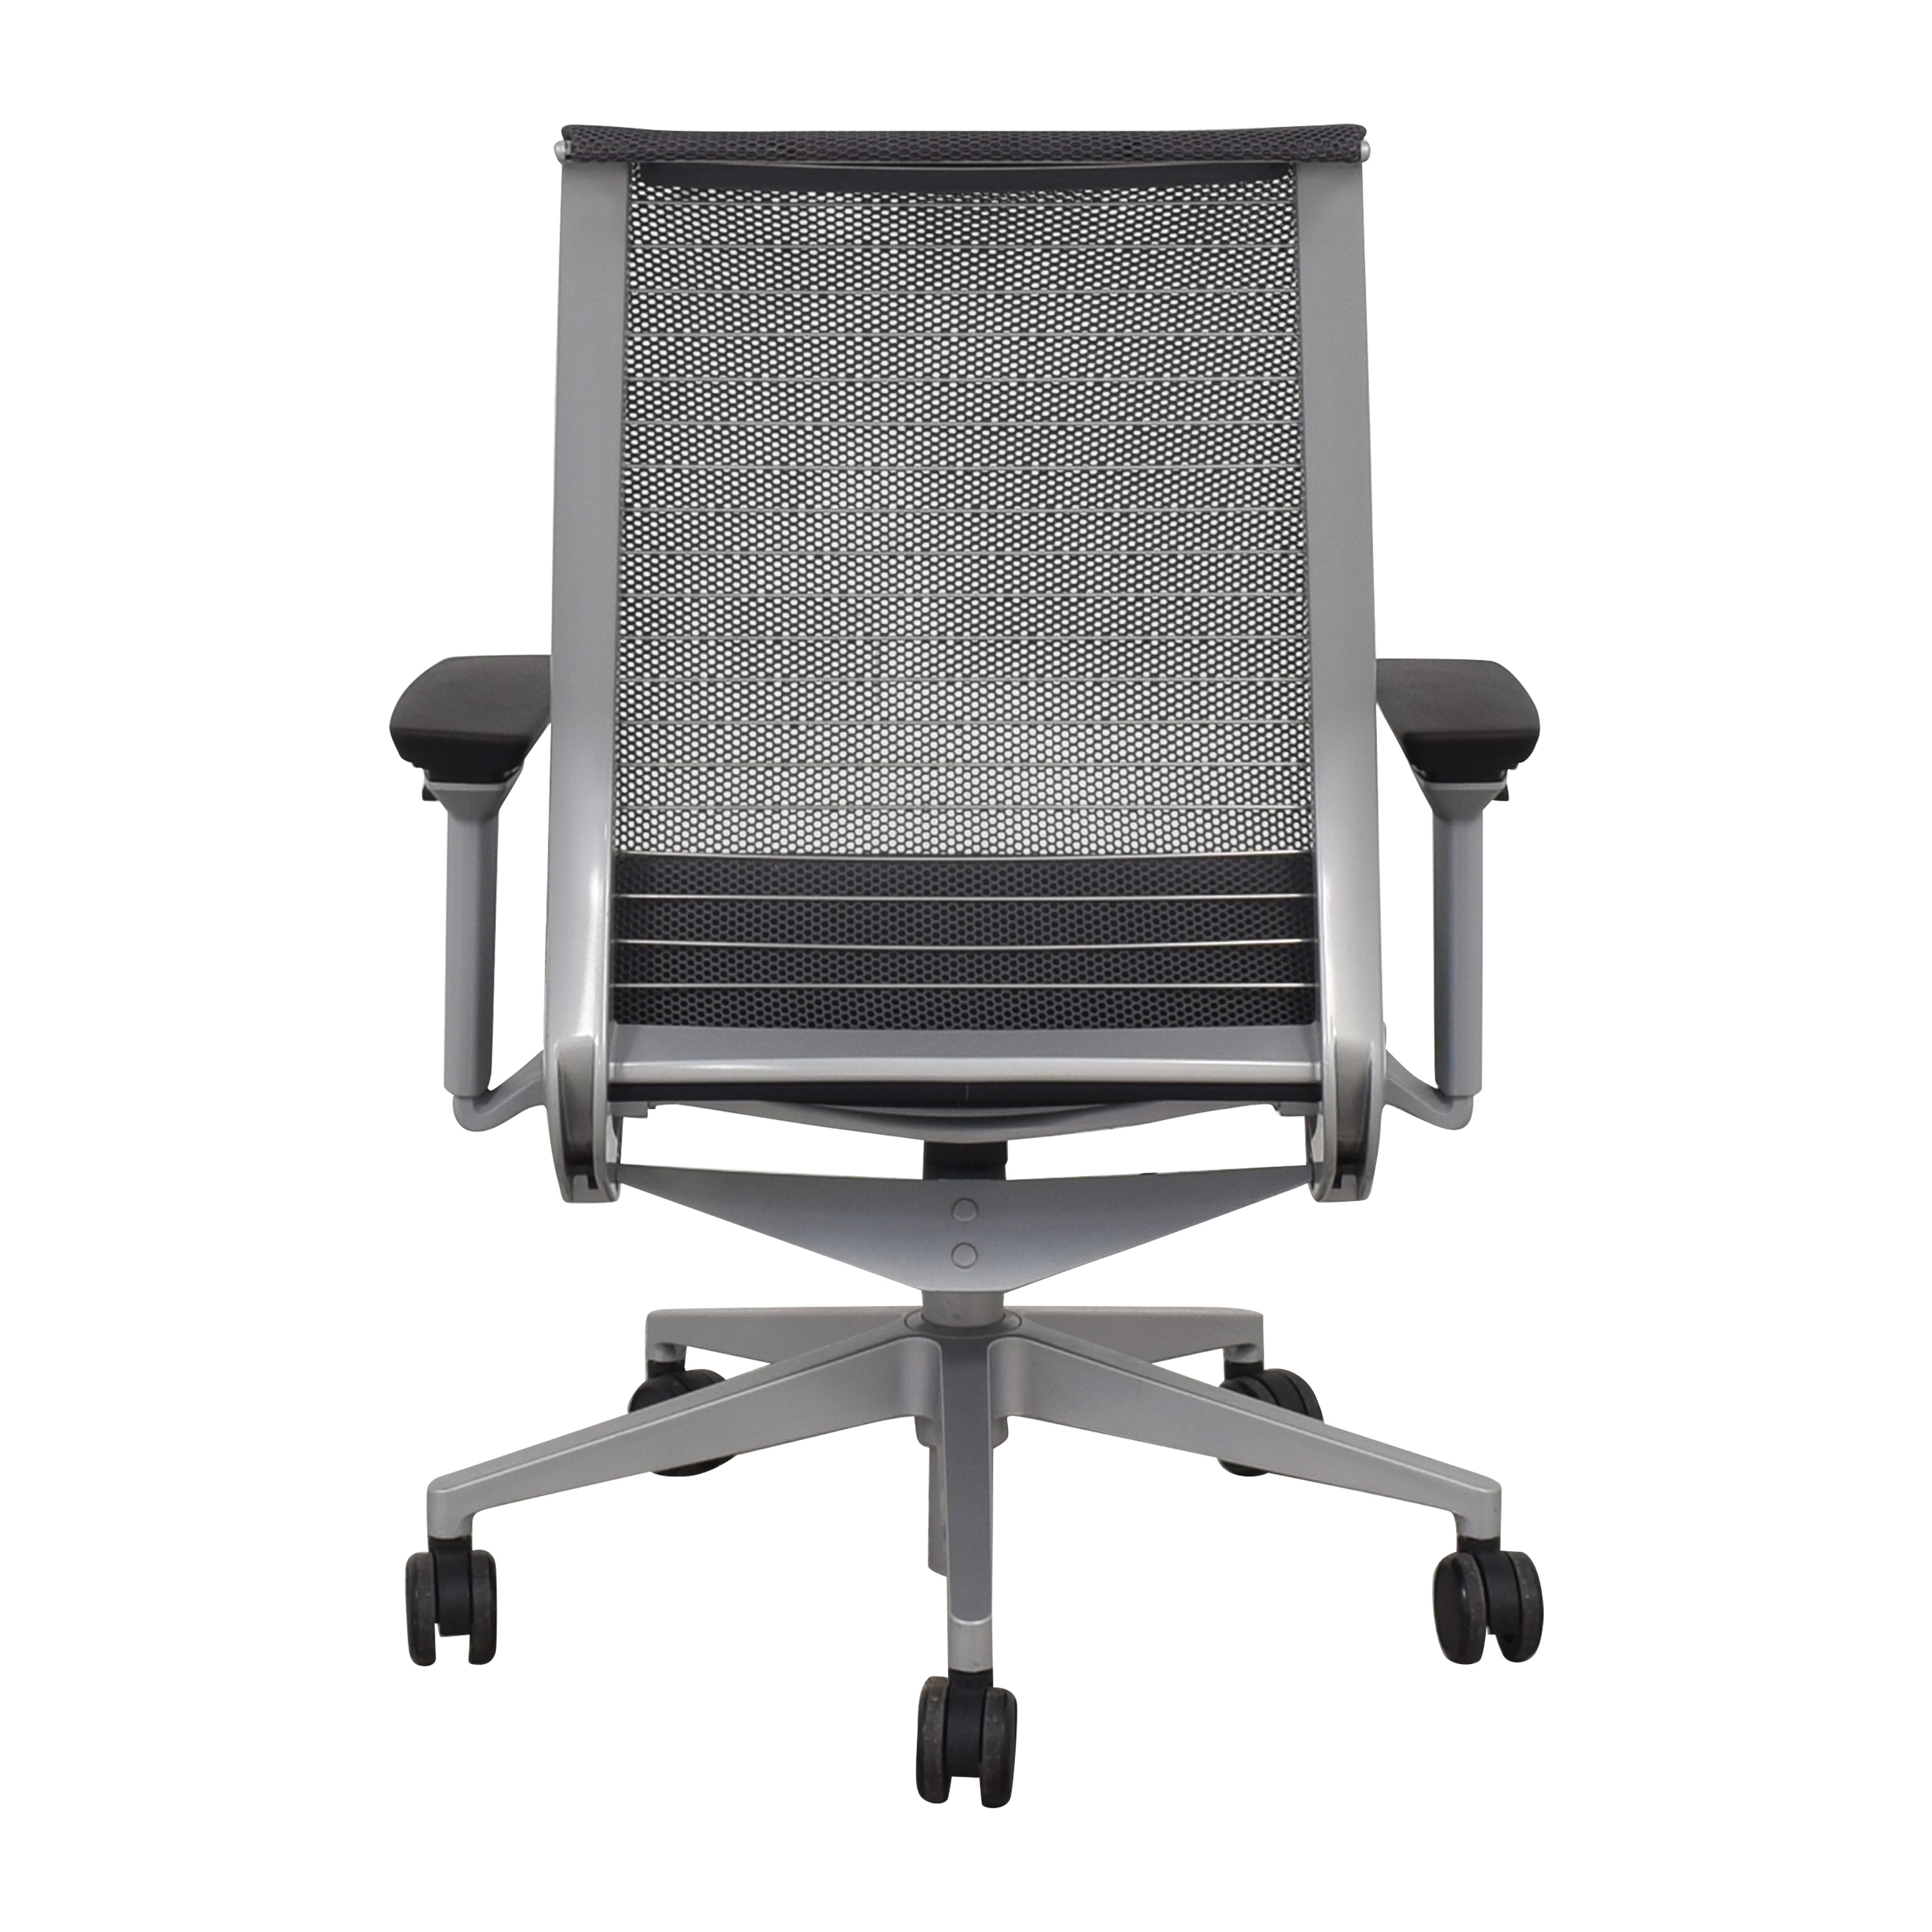 Steelcase Steelcase Cobi Swivel Chair second hand